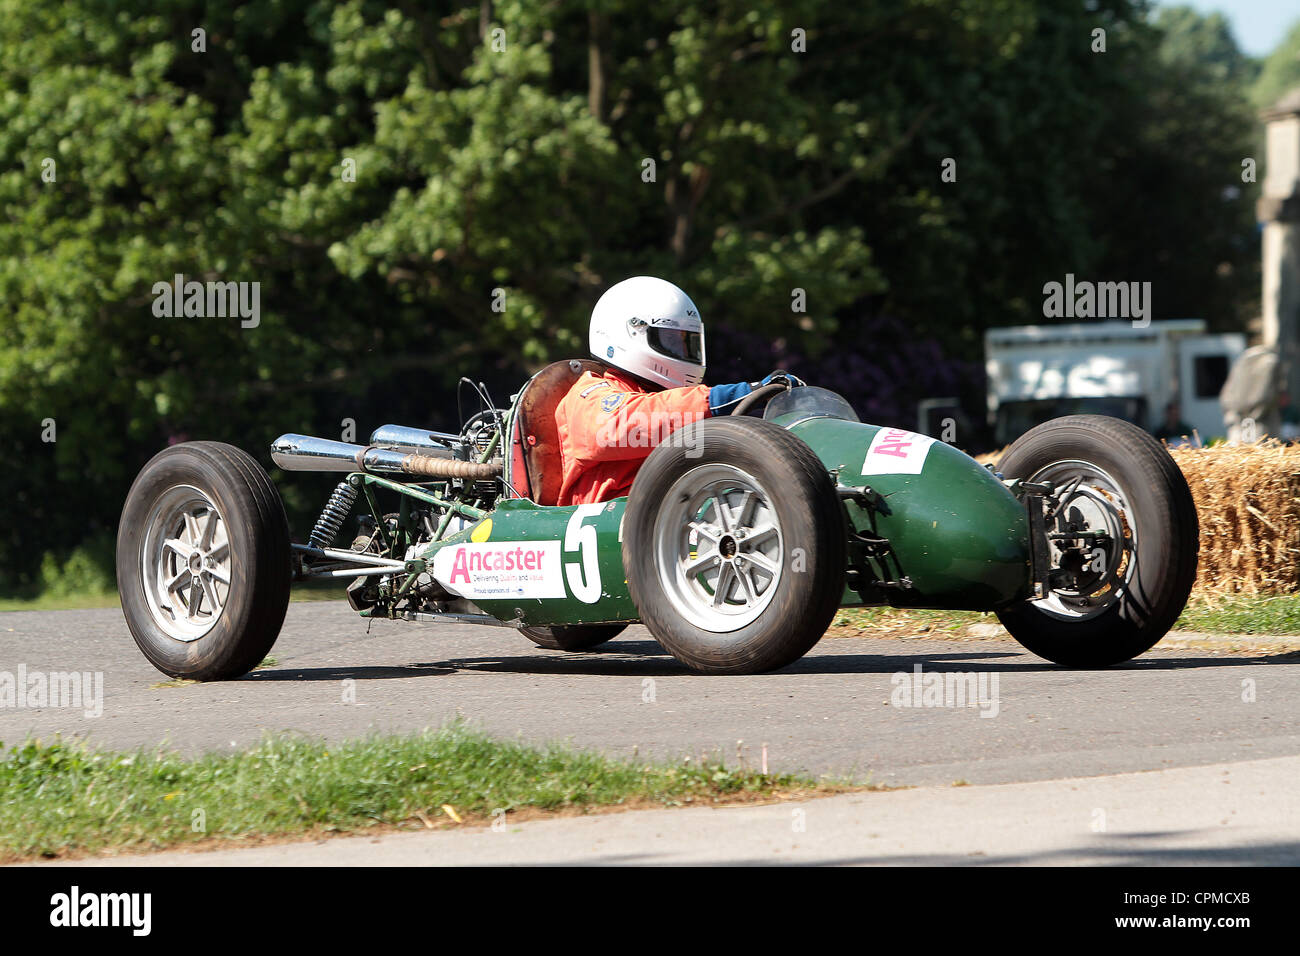 Motorsport at the Palace, Car sprint challenge at Crystal Palace - Stock Image